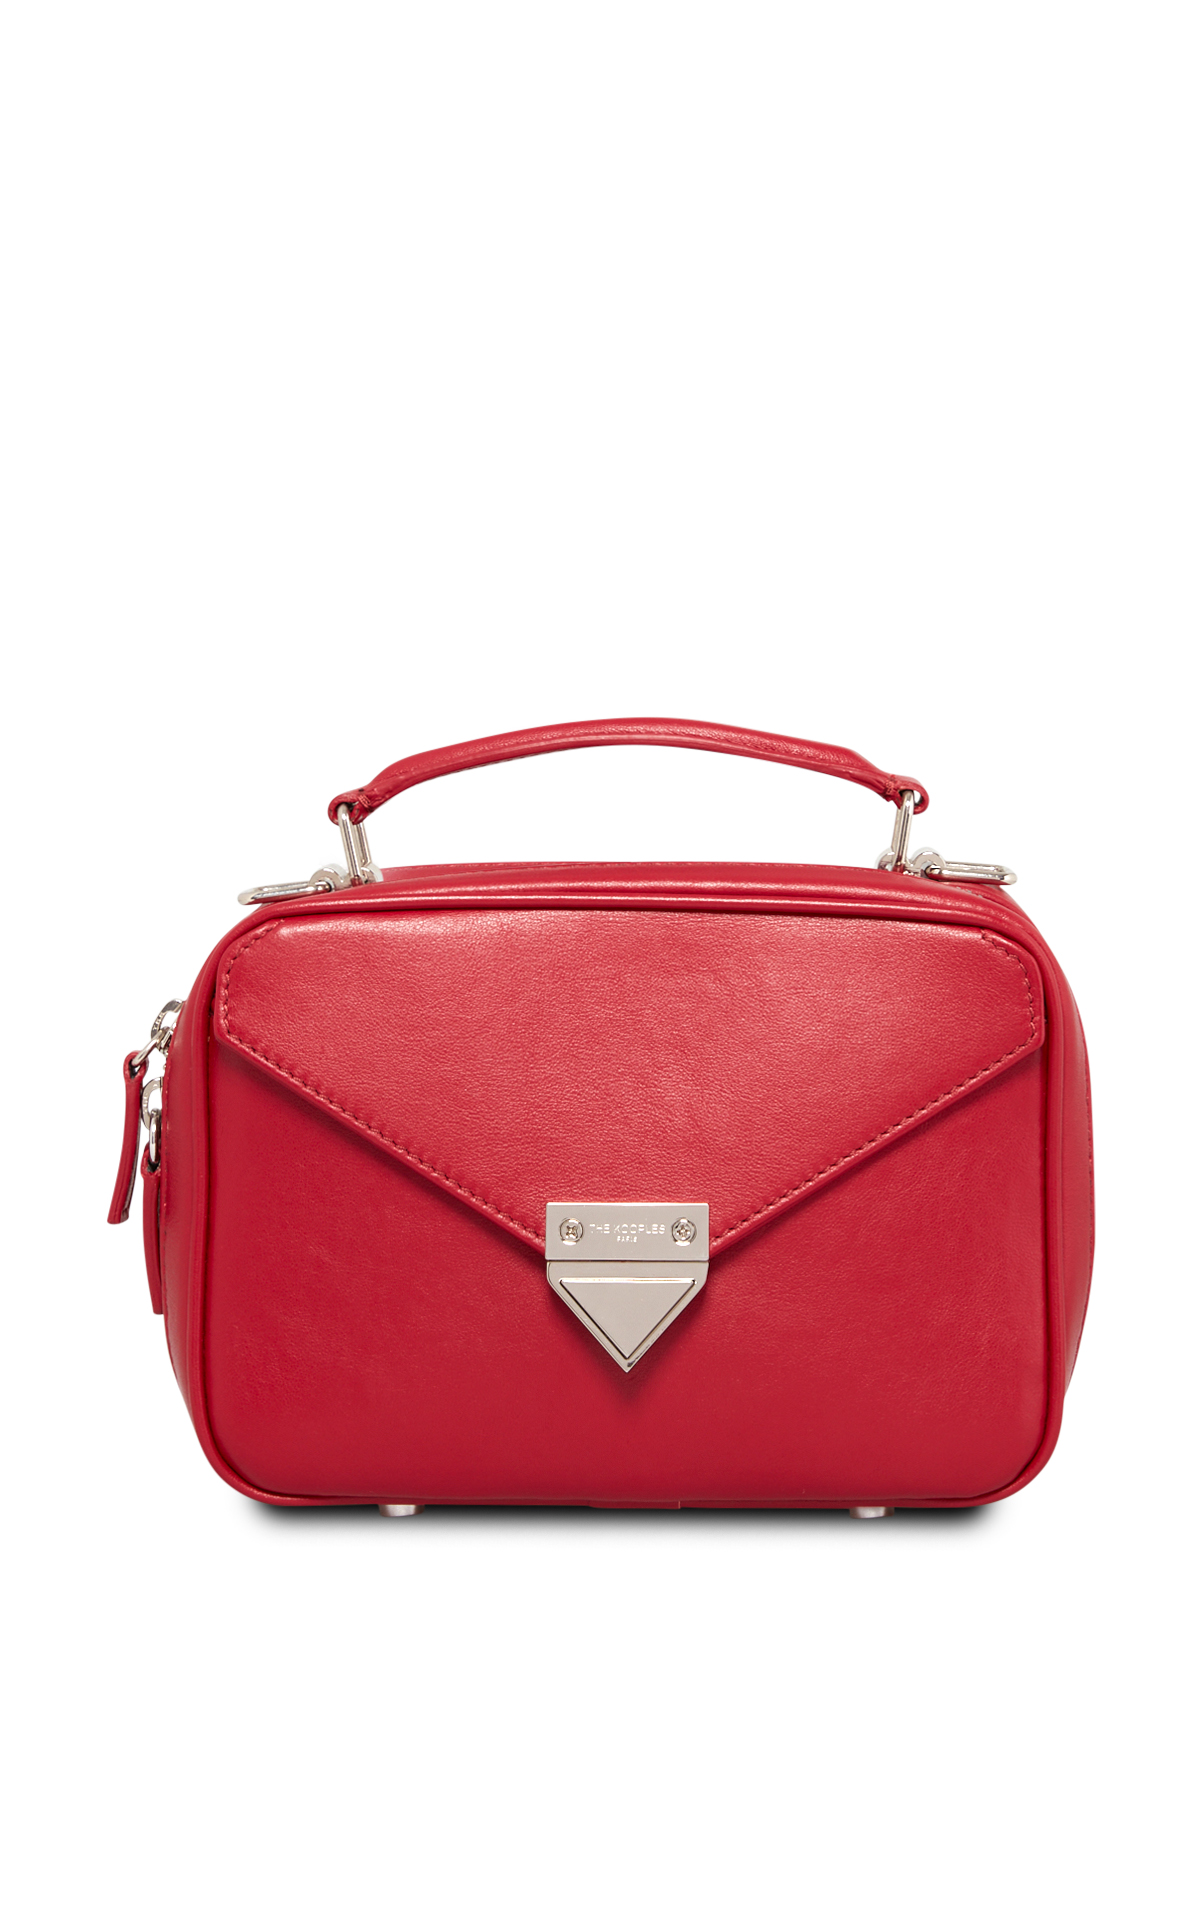 The Kooples Sac Barbara moyen rouge*